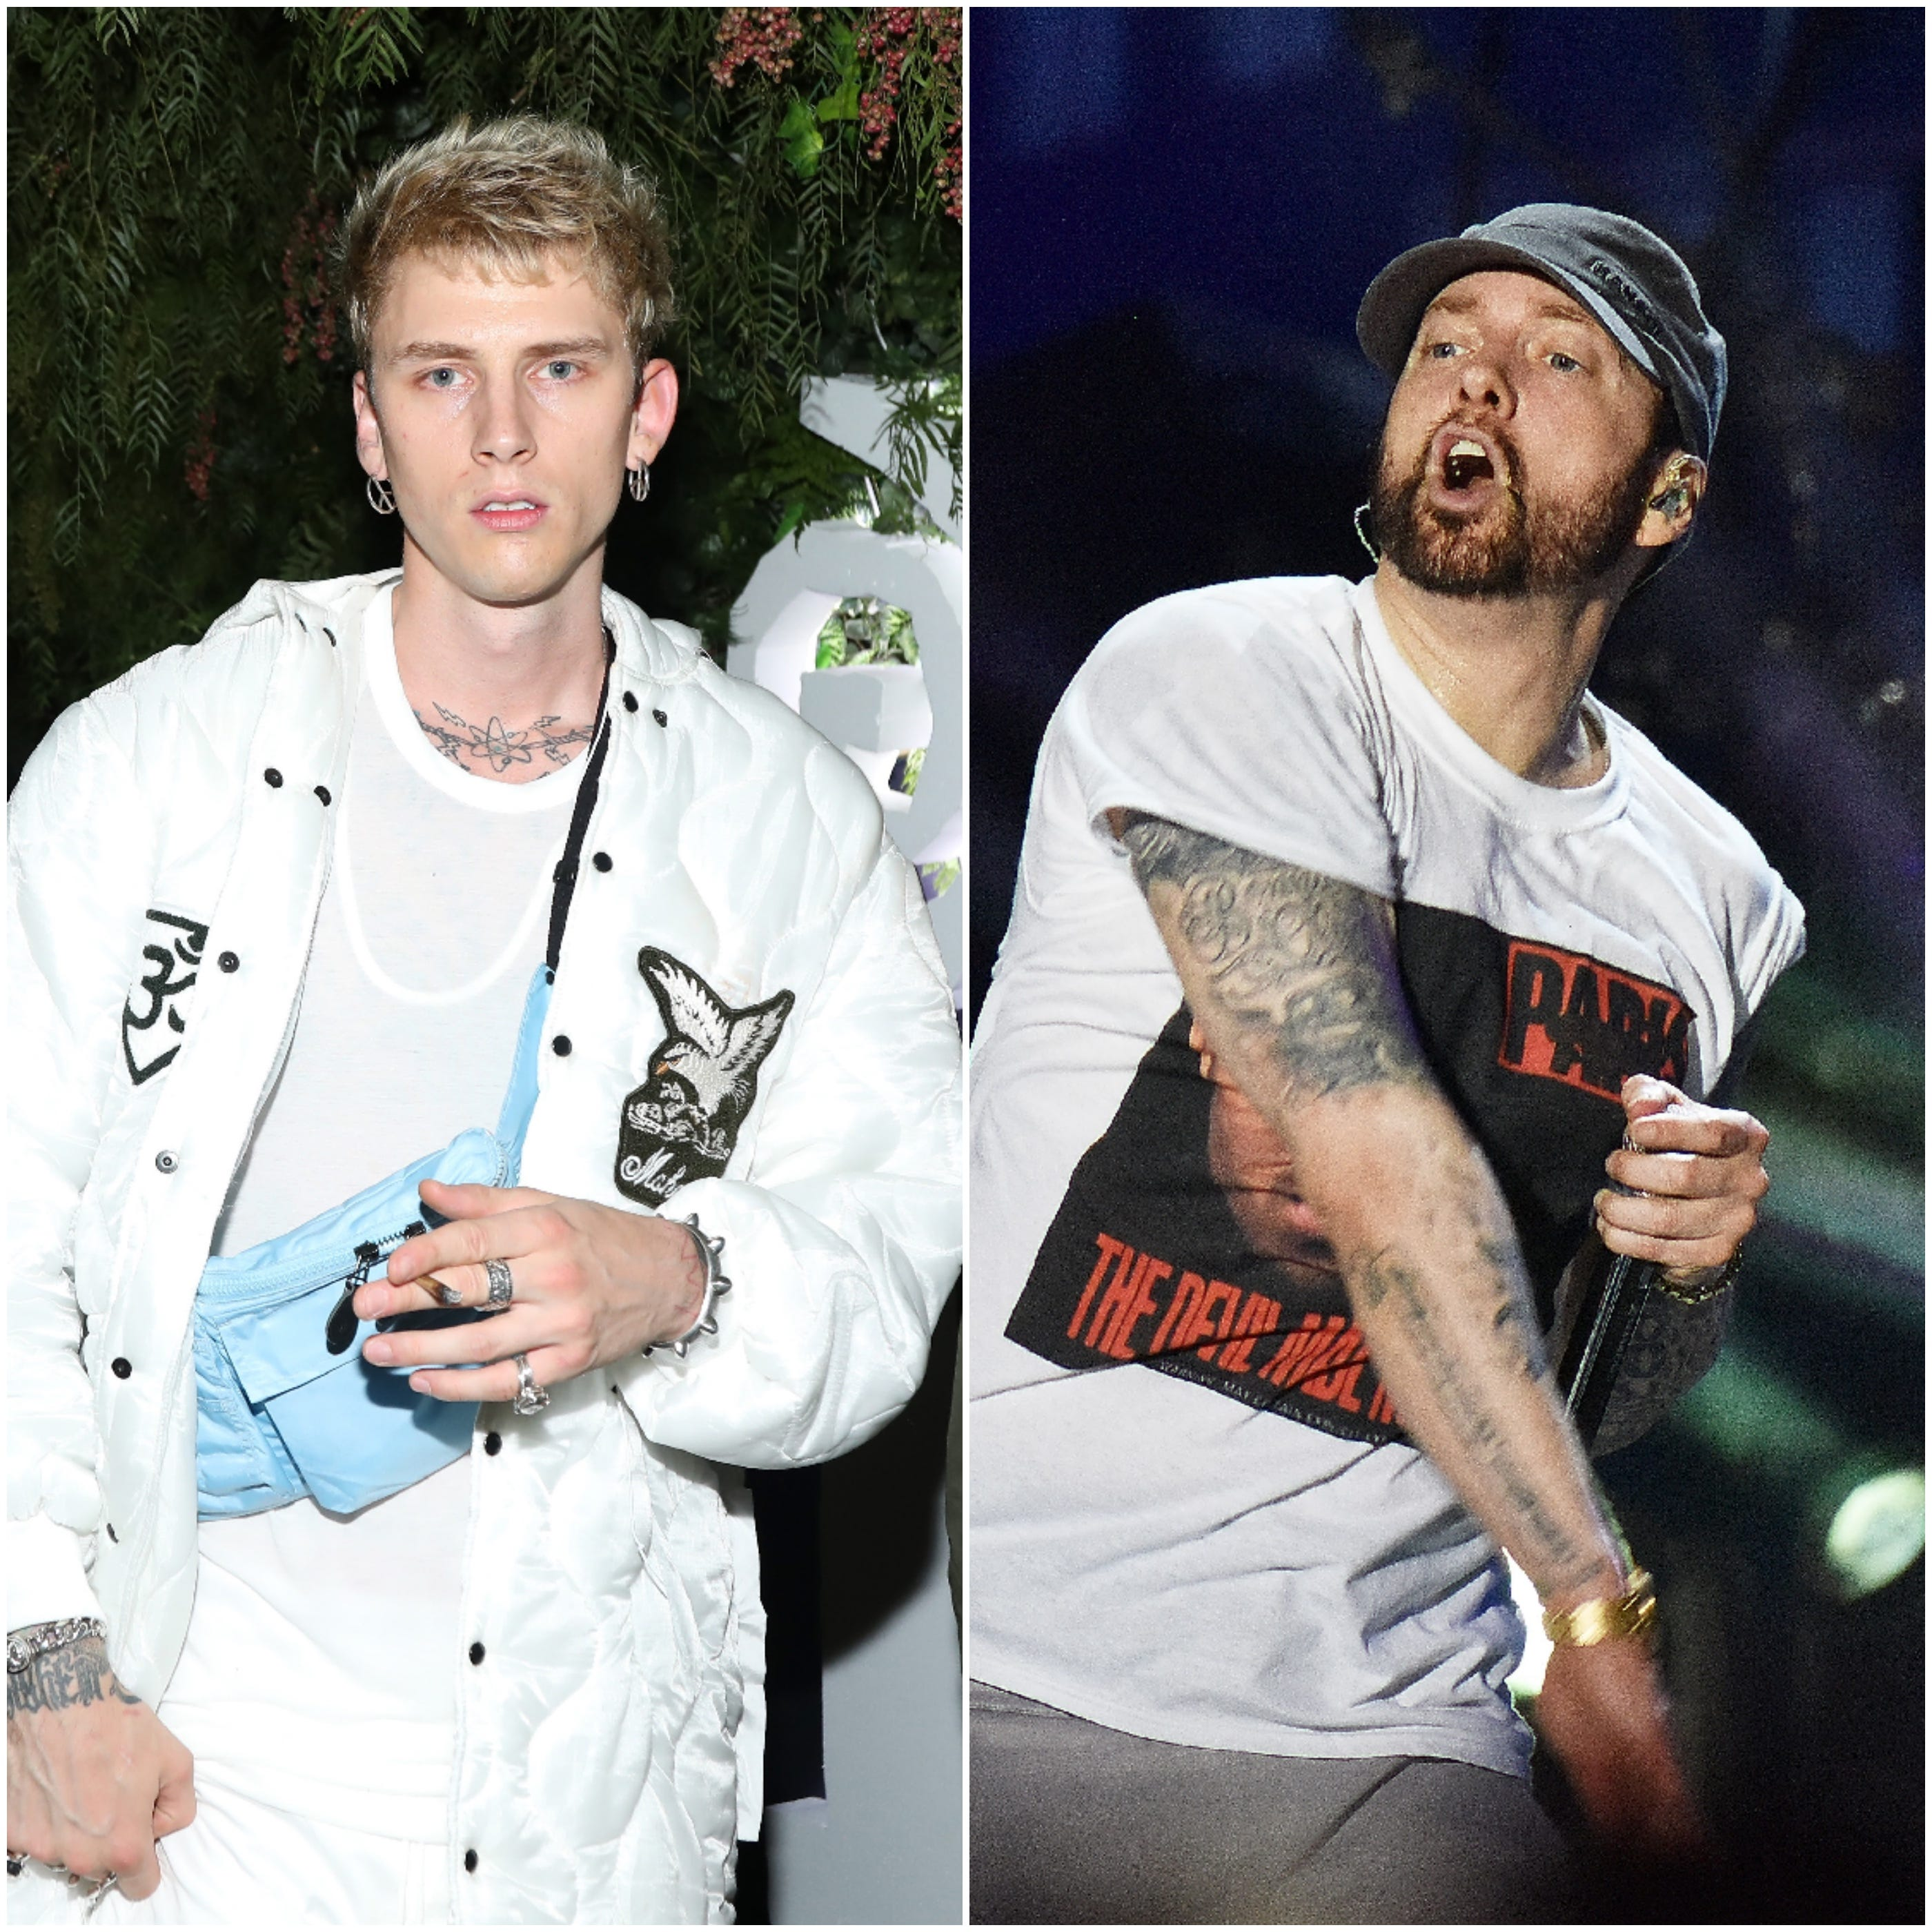 Machine Gun Kelly says he won't make peace with Eminem in ongoing feud